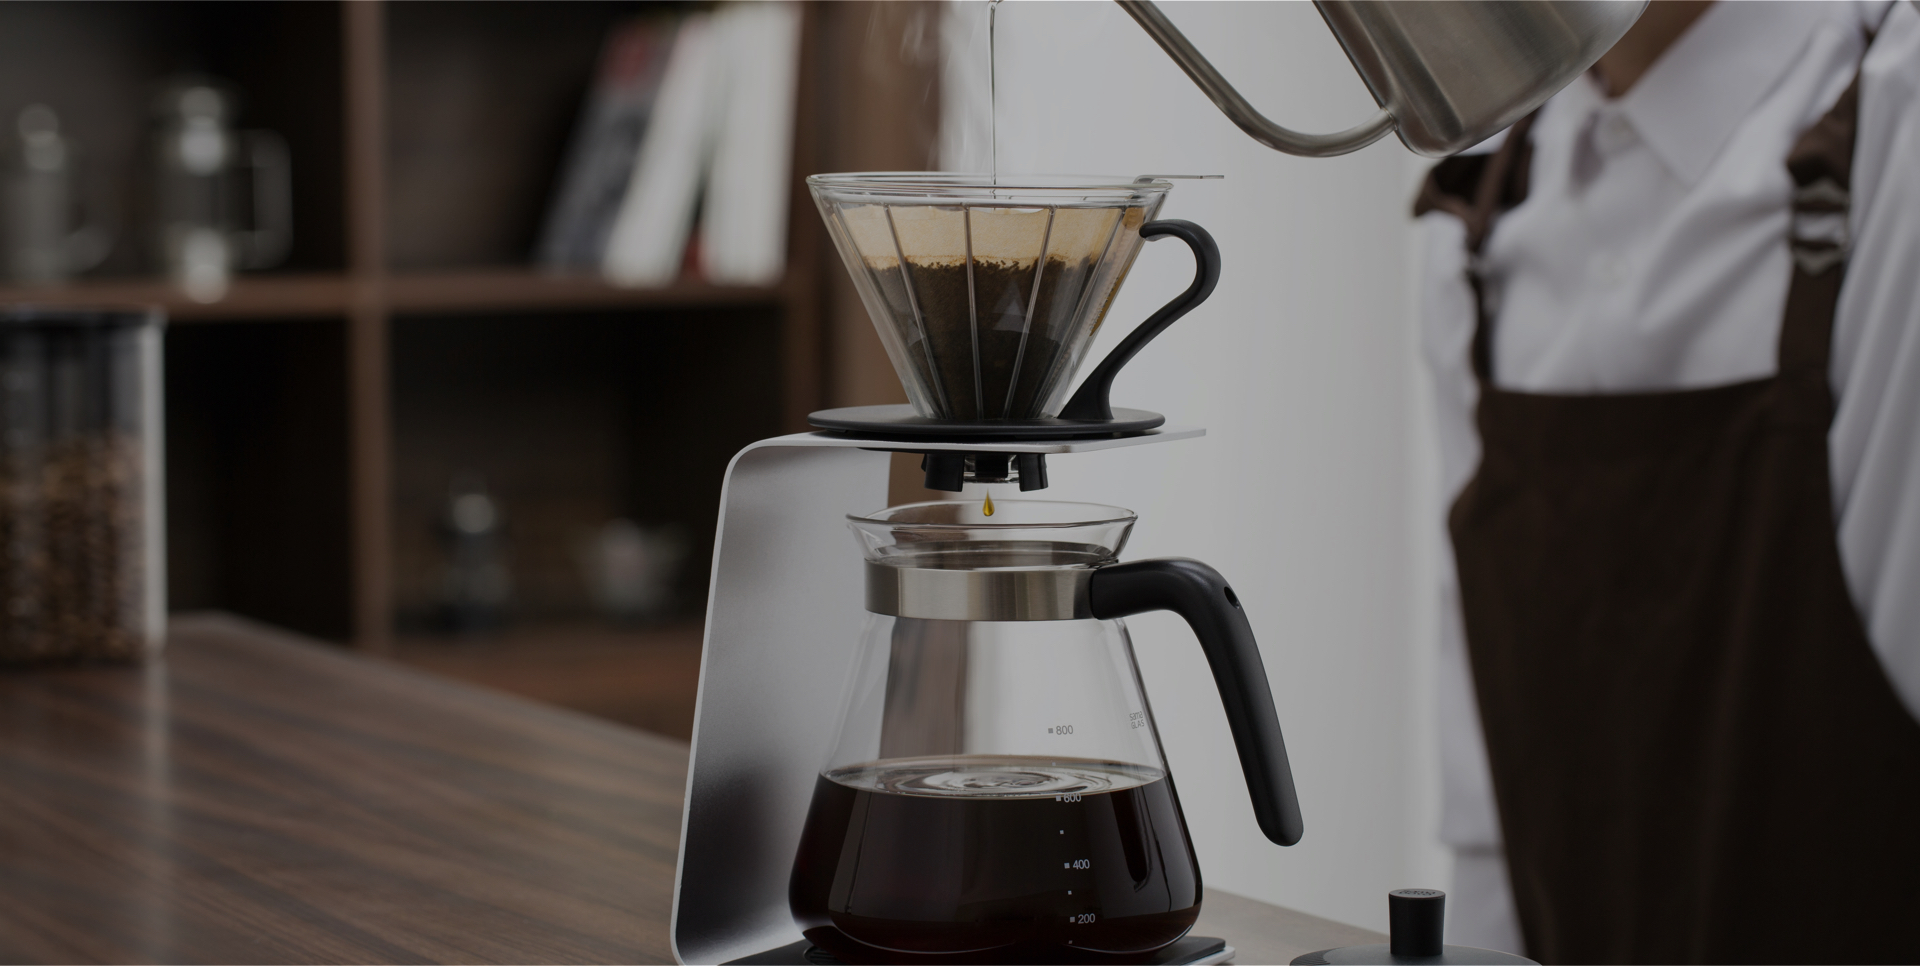 You don't need a thousand-dollar machine for the perfect brews